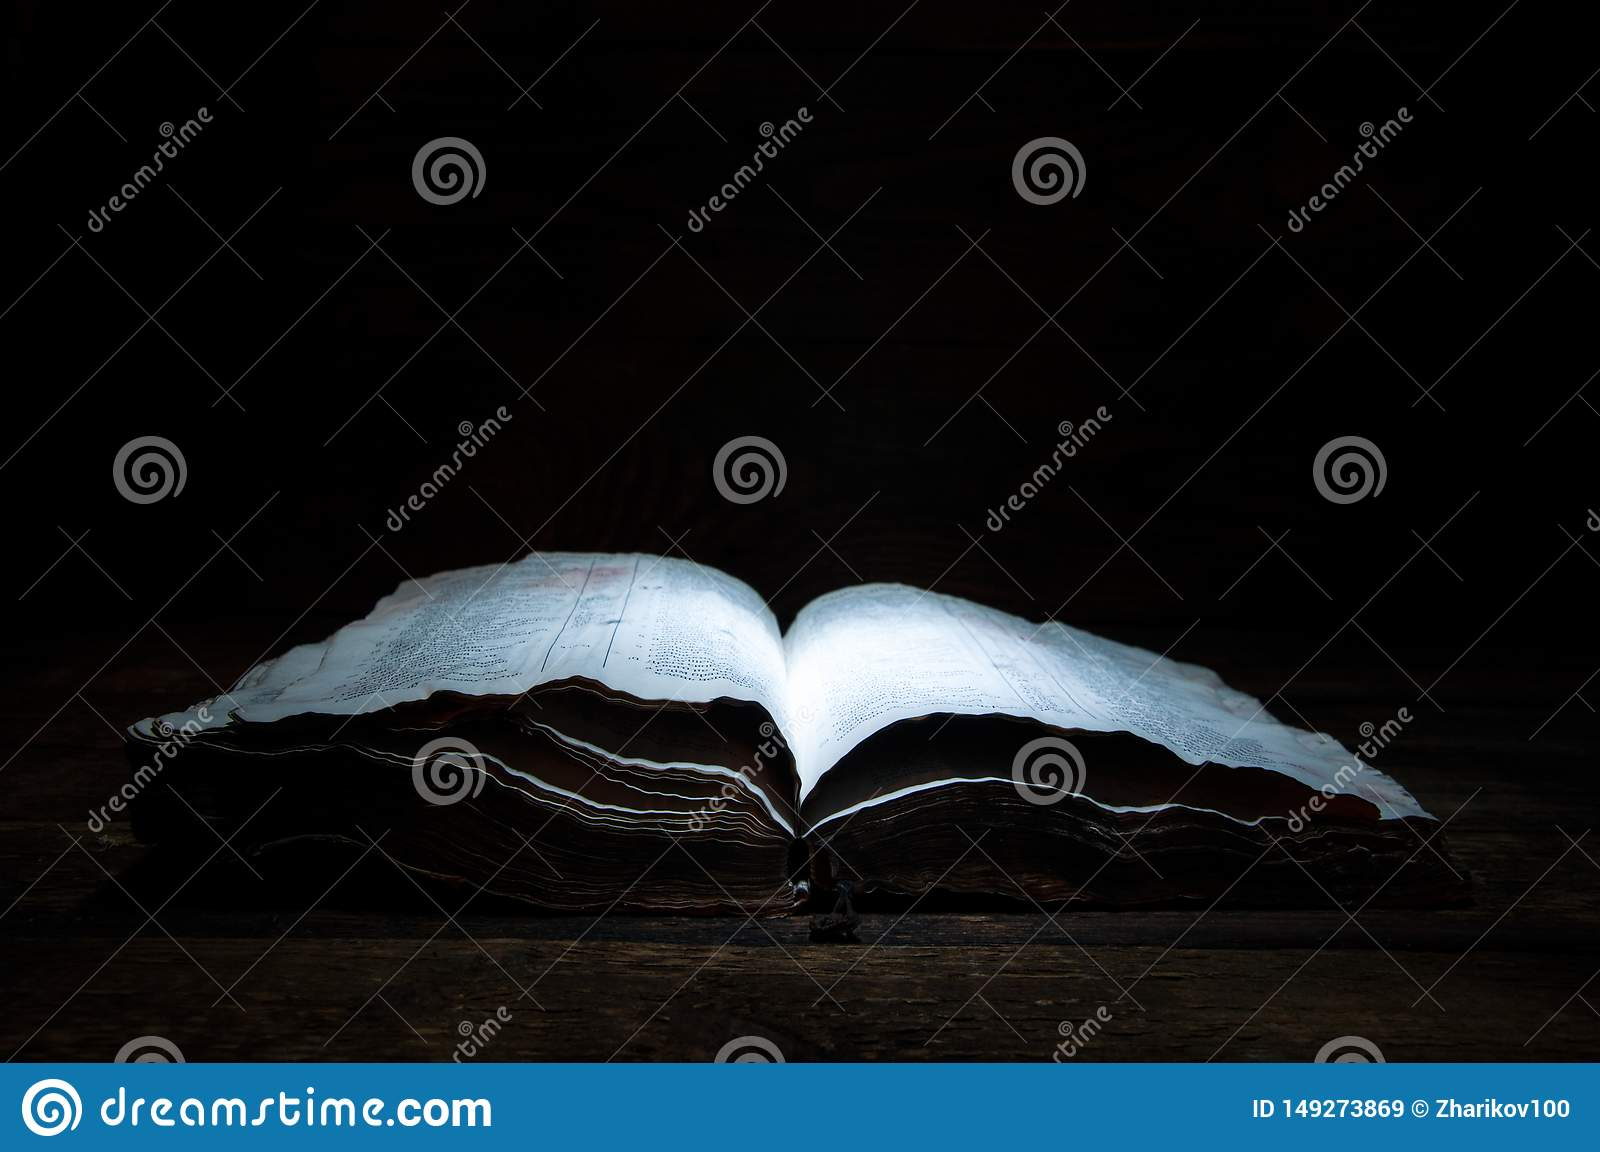 An old open book is lying on a wooden table in the dark. A light shines on the book from above. Holy Bible.